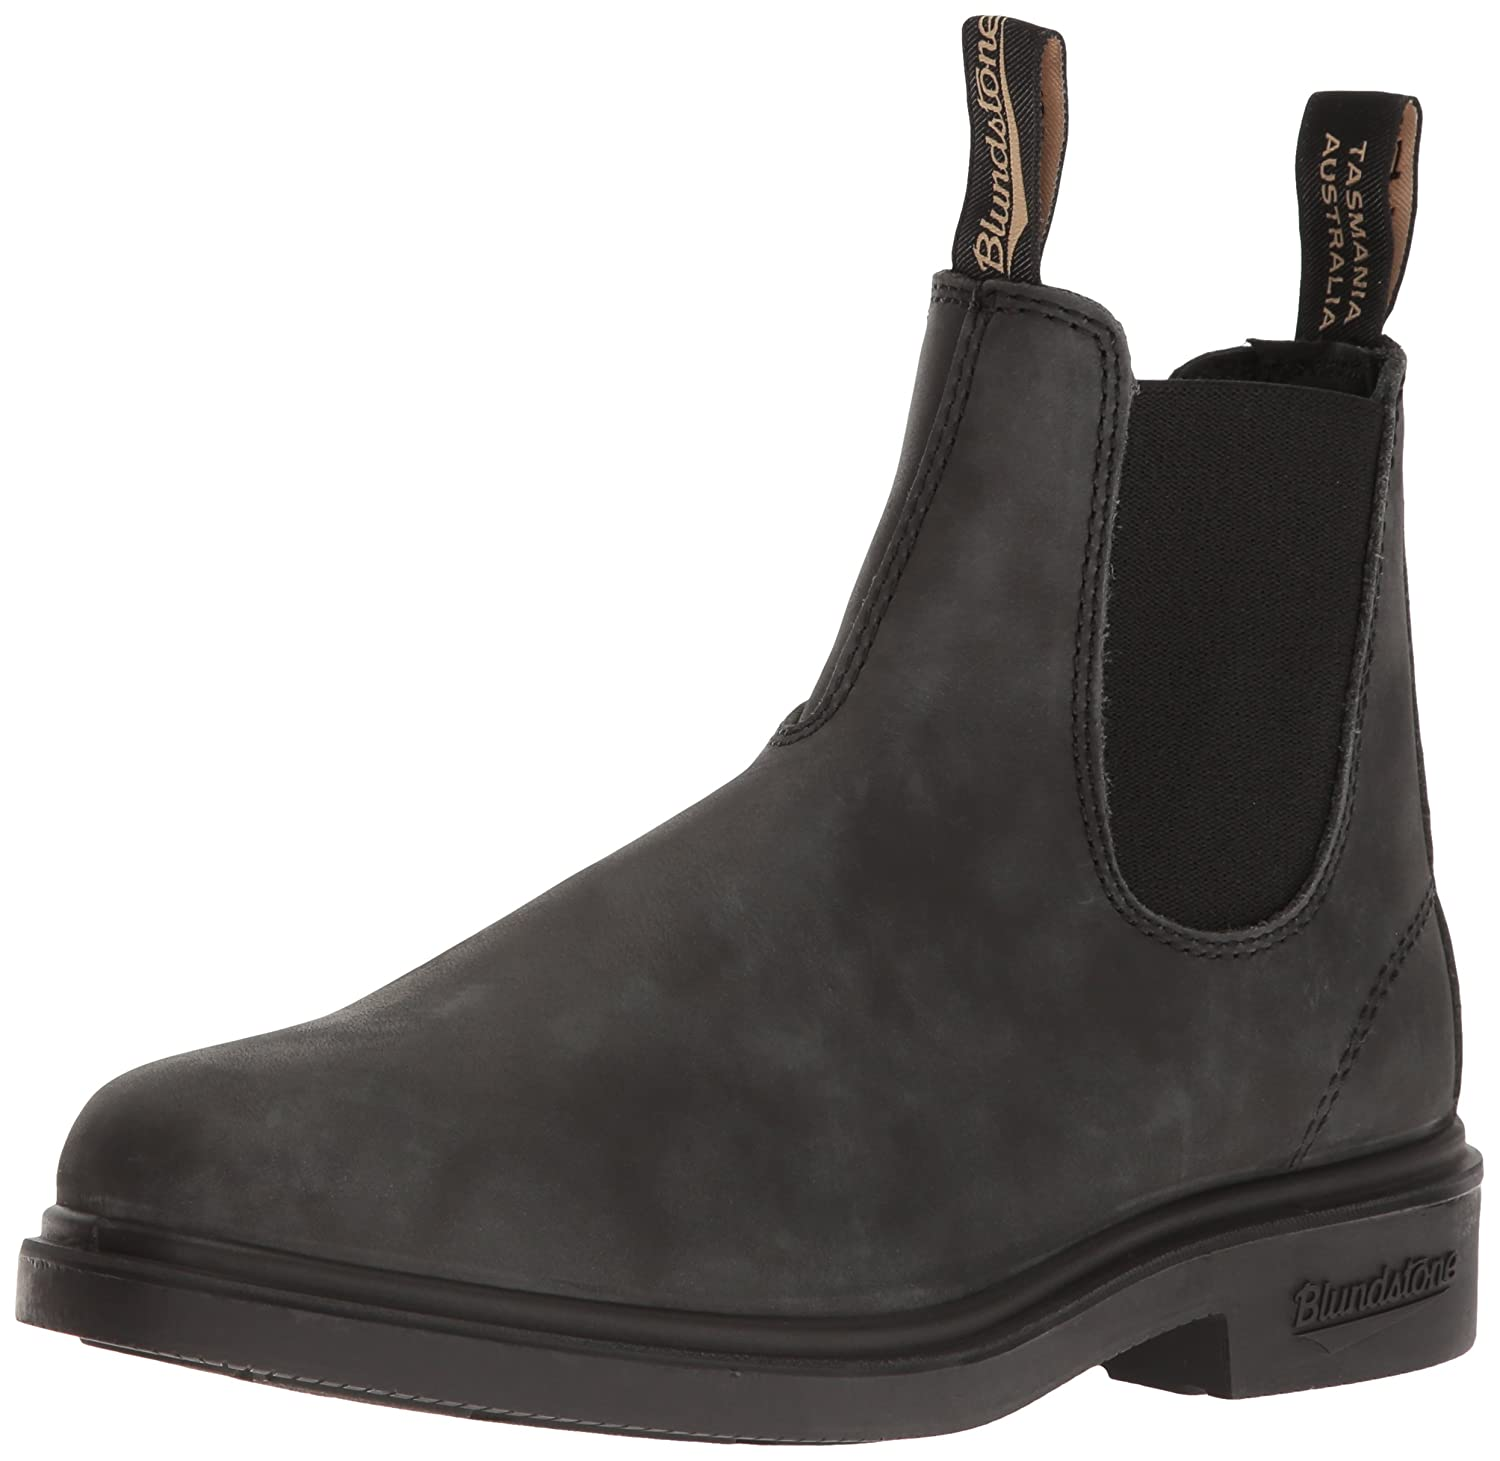 Blundstone Unisex Dress Series B00UKCLA5C 6 M US Men's /8 M US Women's -5 AU|Rustic Black